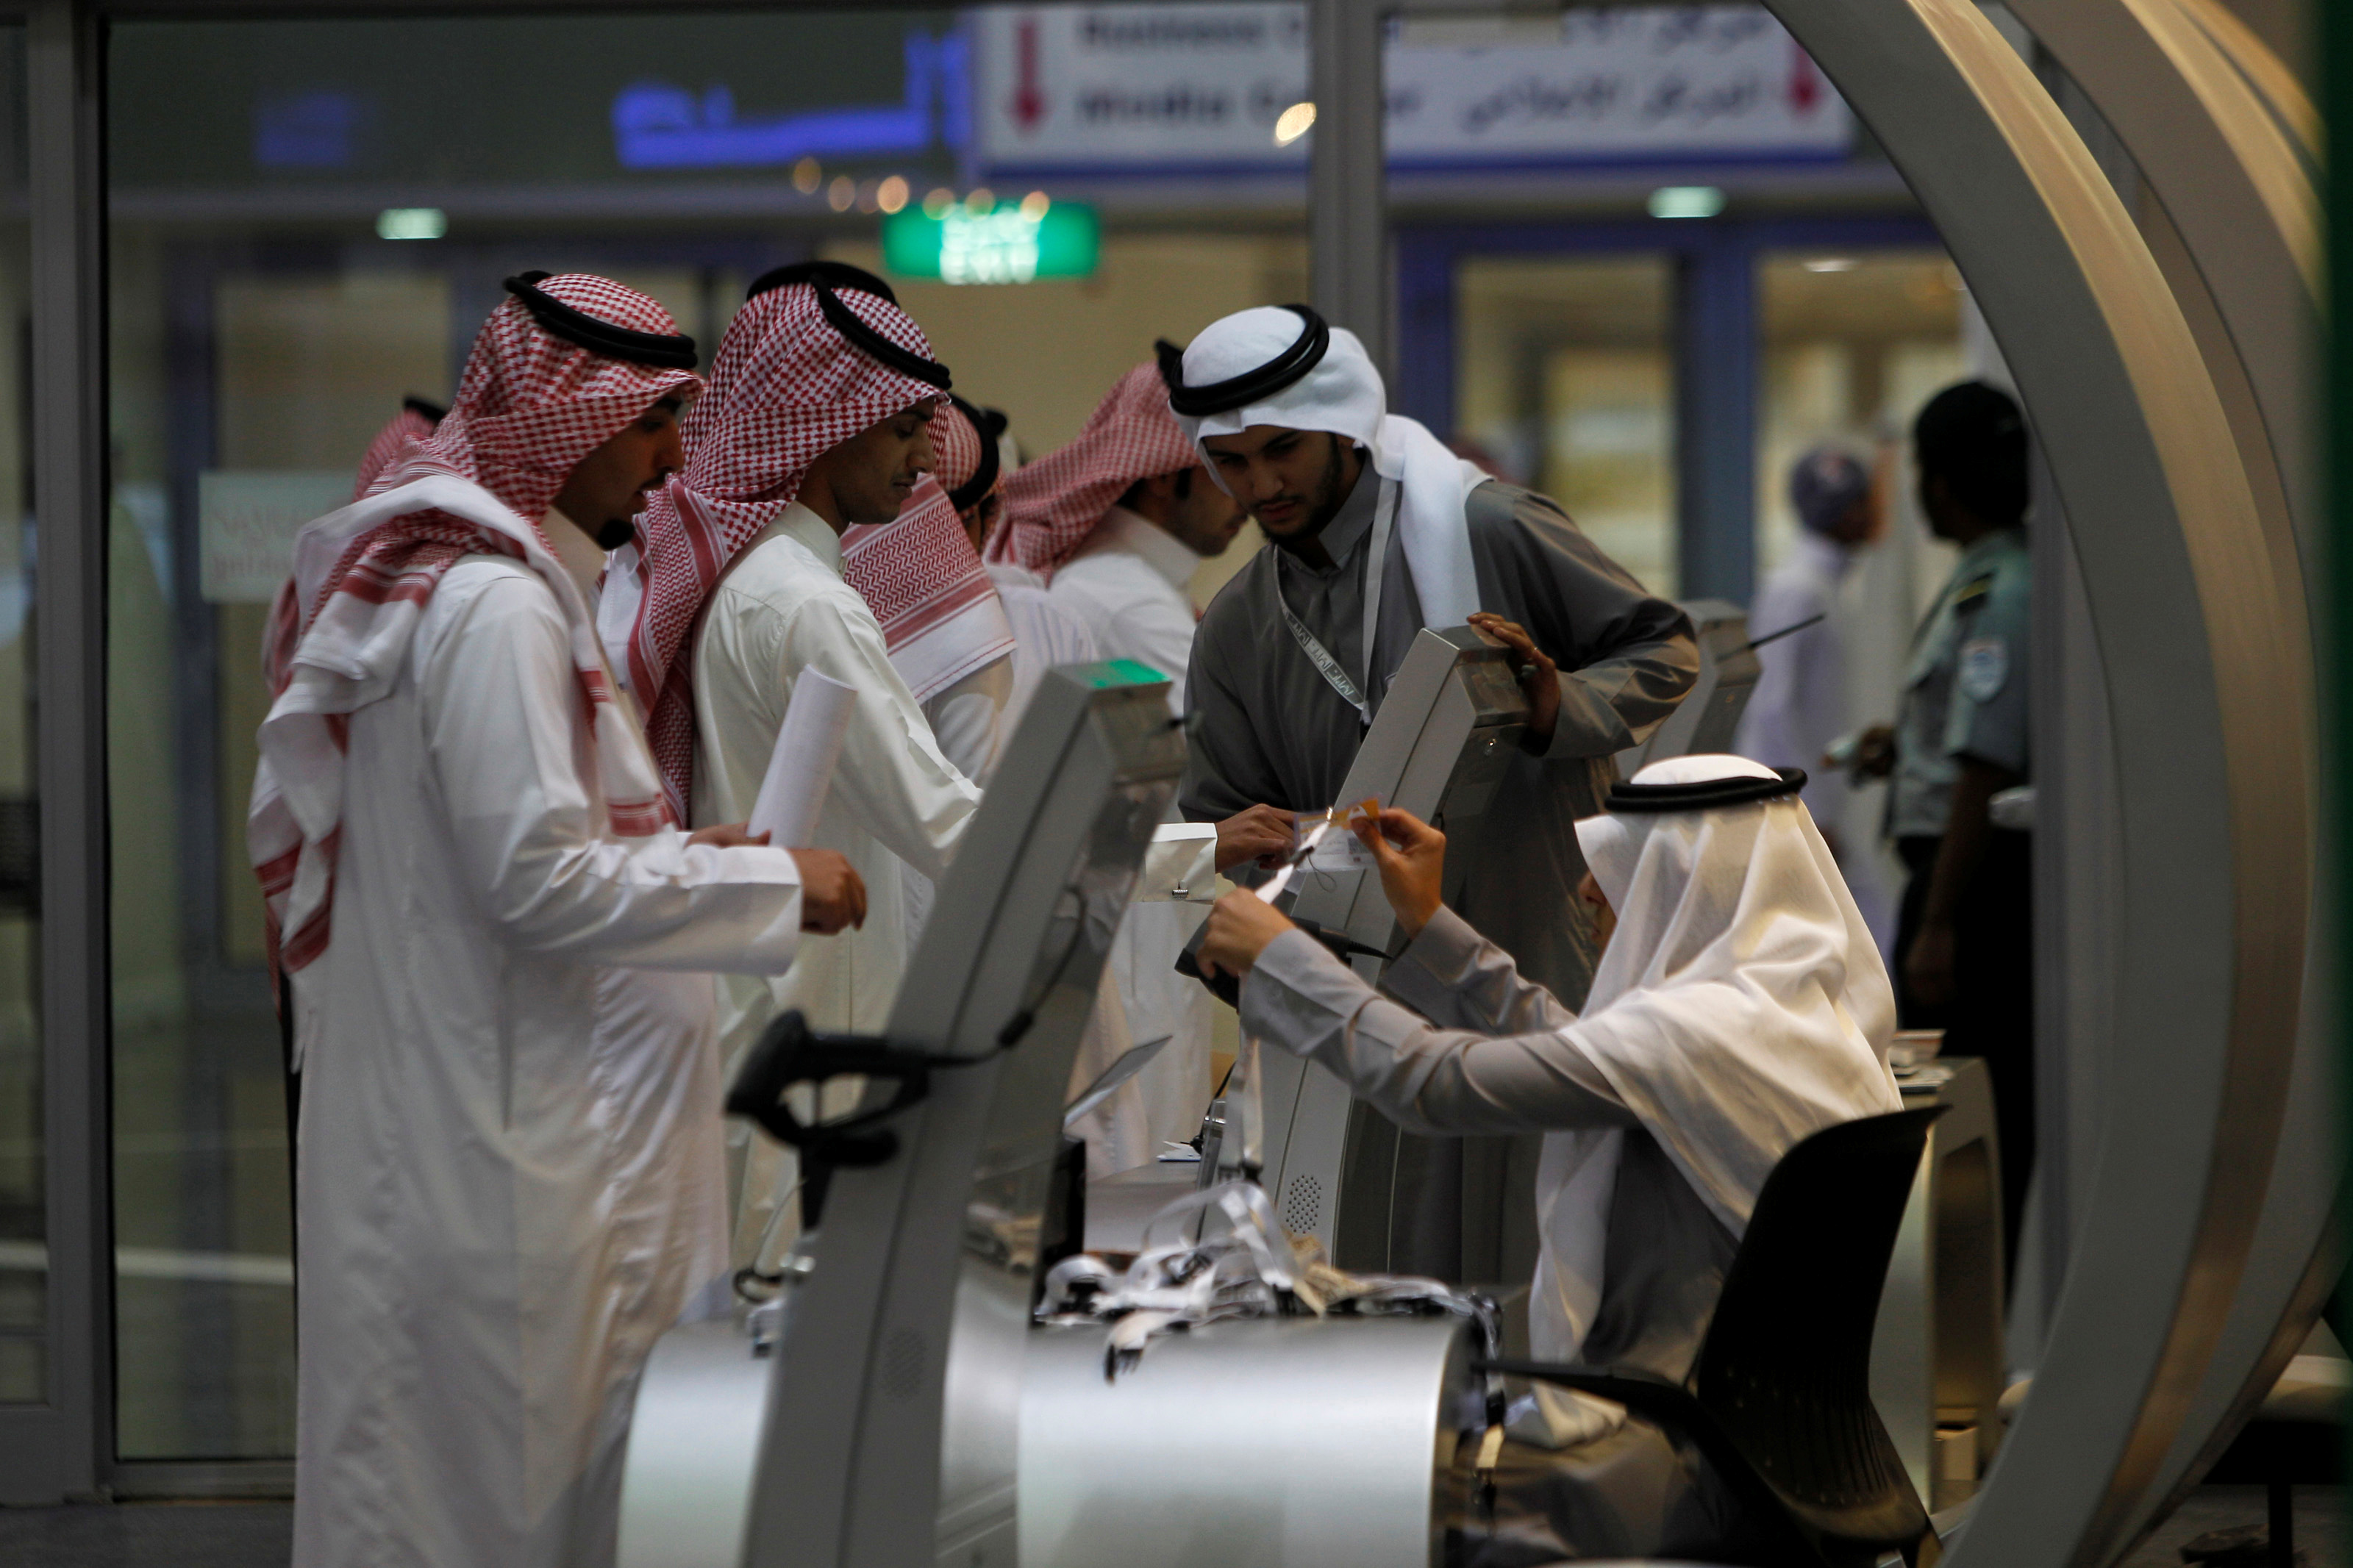 Jobseekers stand in line to talk with a recruiter at a booth at a job fair in Riyadh, January 29, 2012. REUTERS/Fahad Shadeed/File Photo